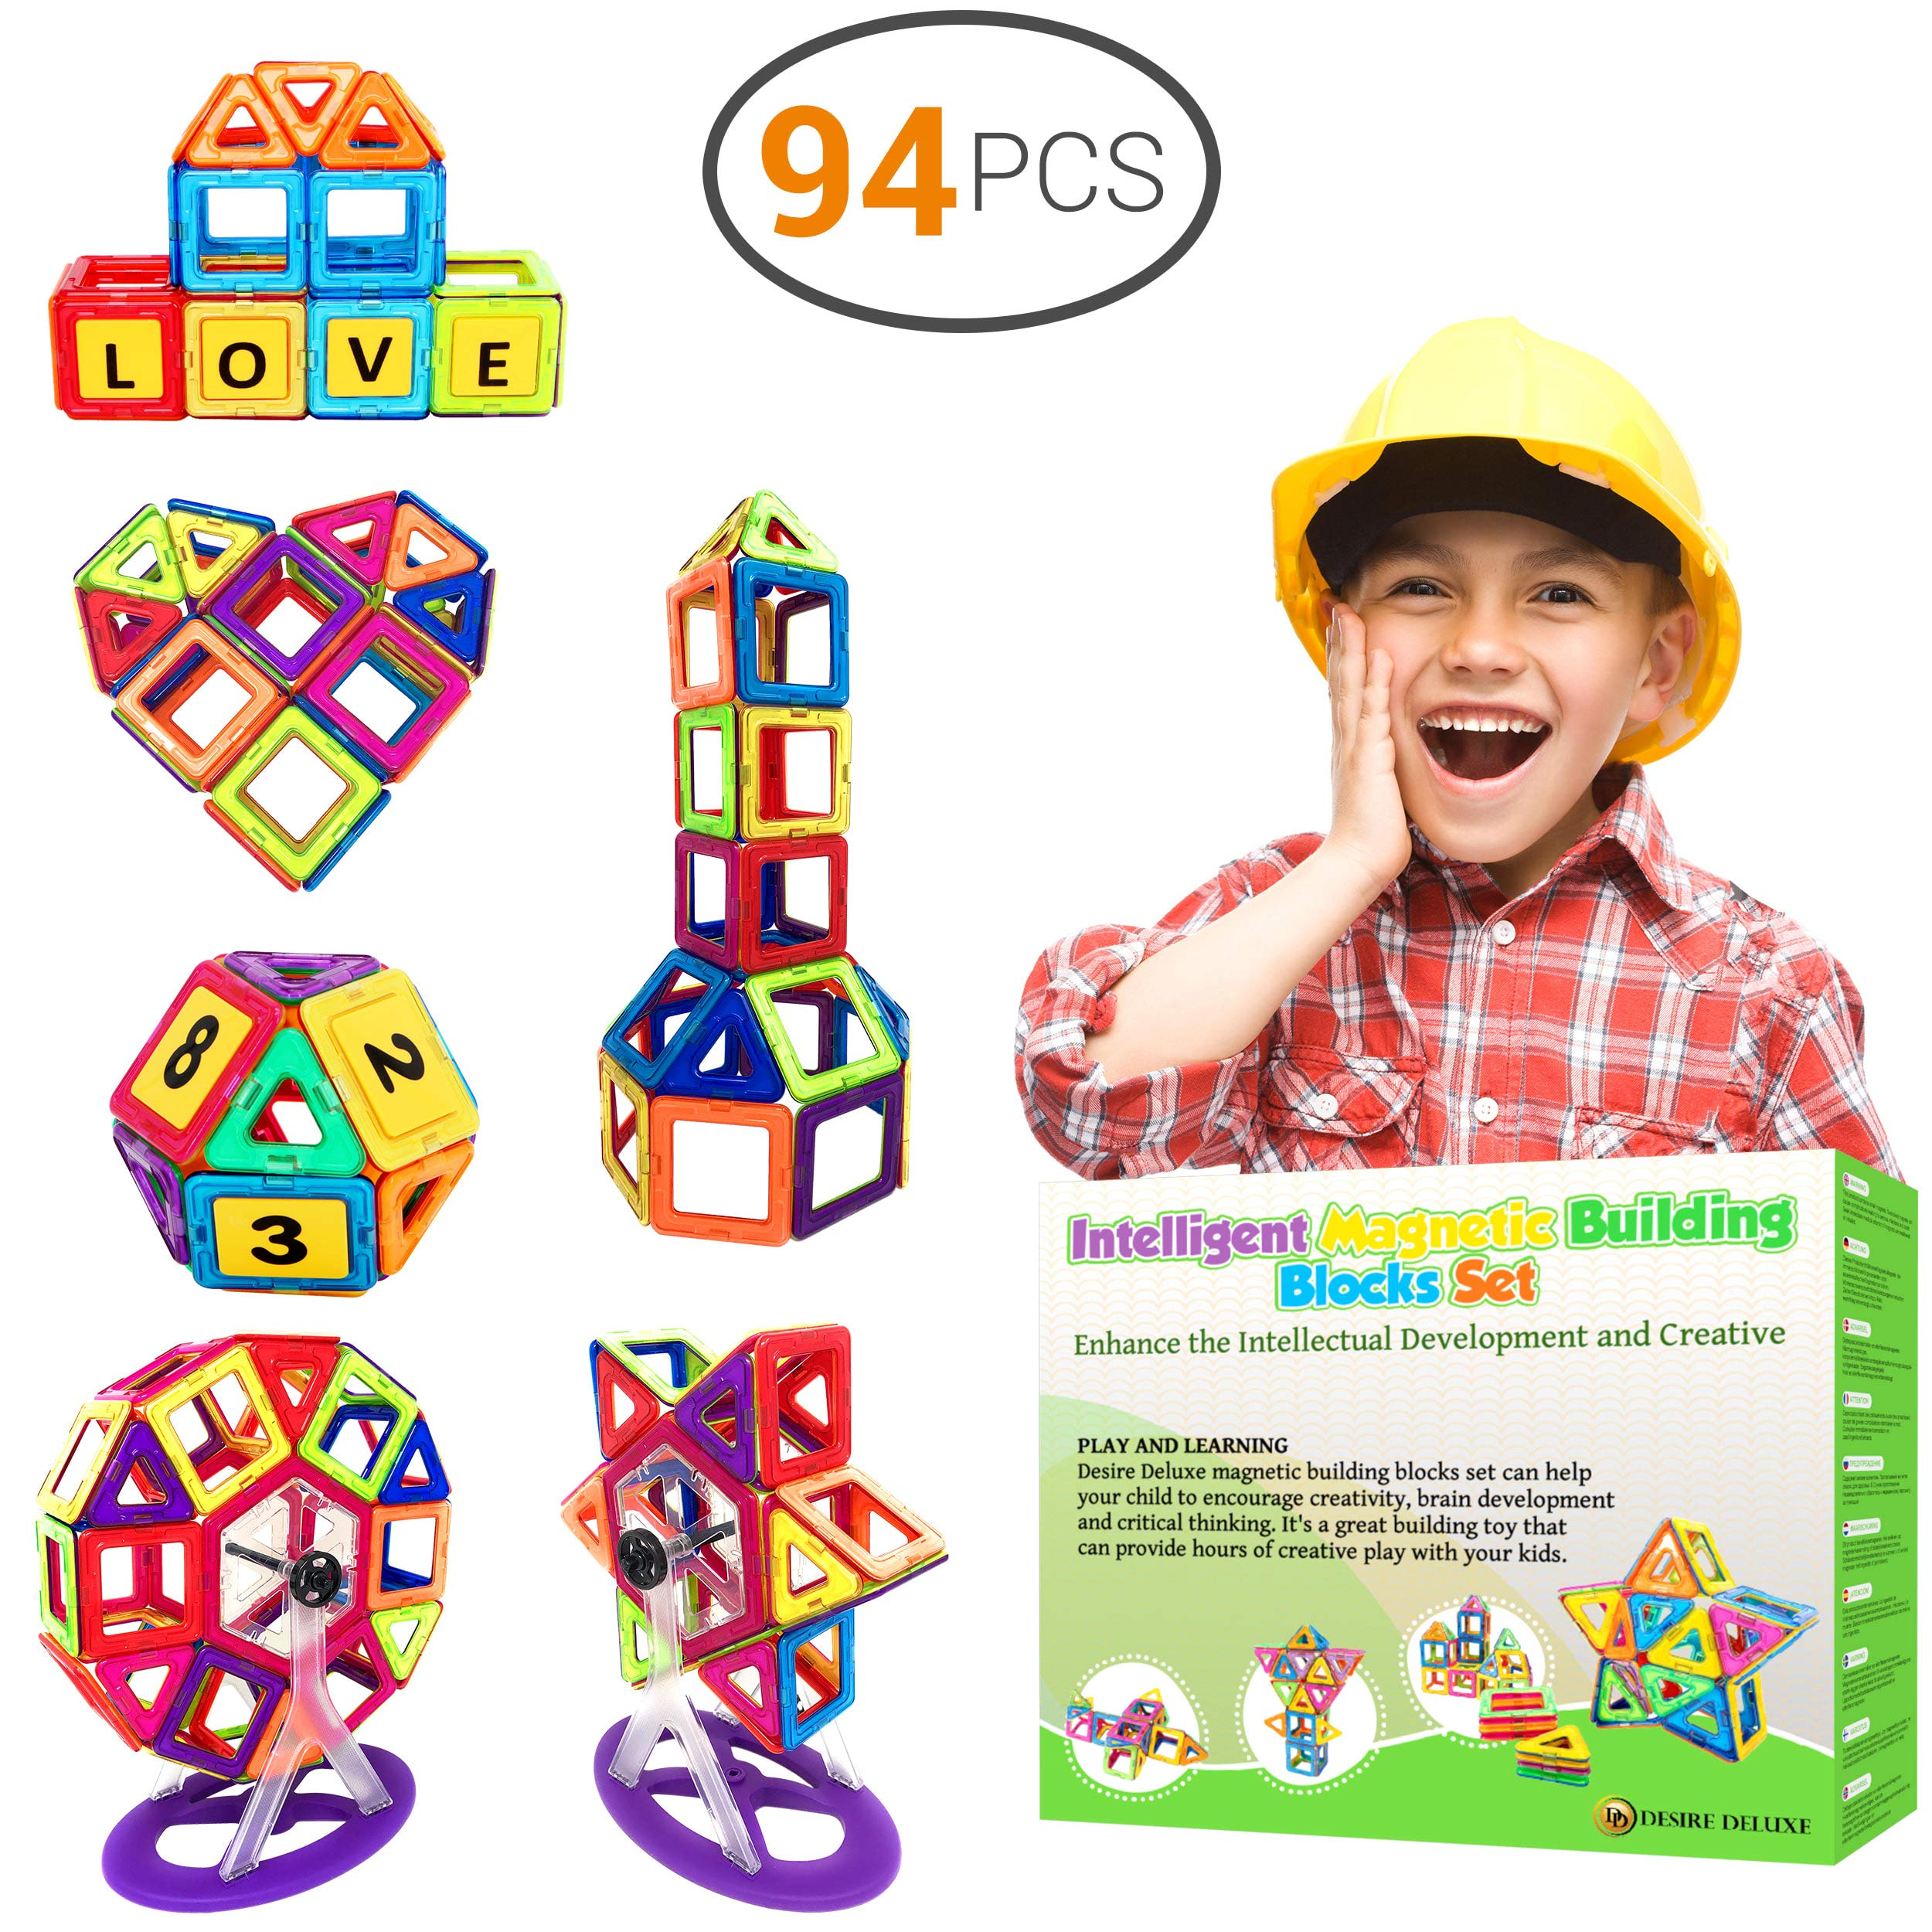 Desire Deluxe Magnetic Blocks Building Tiles STEM Toys Set (94pc ) - Children Creativity Educational 5 Year Old Boy Gifts for Kids Magnet Construction Toy for Girls Age 3 4 6 7 Unique Present by Desire Deluxe